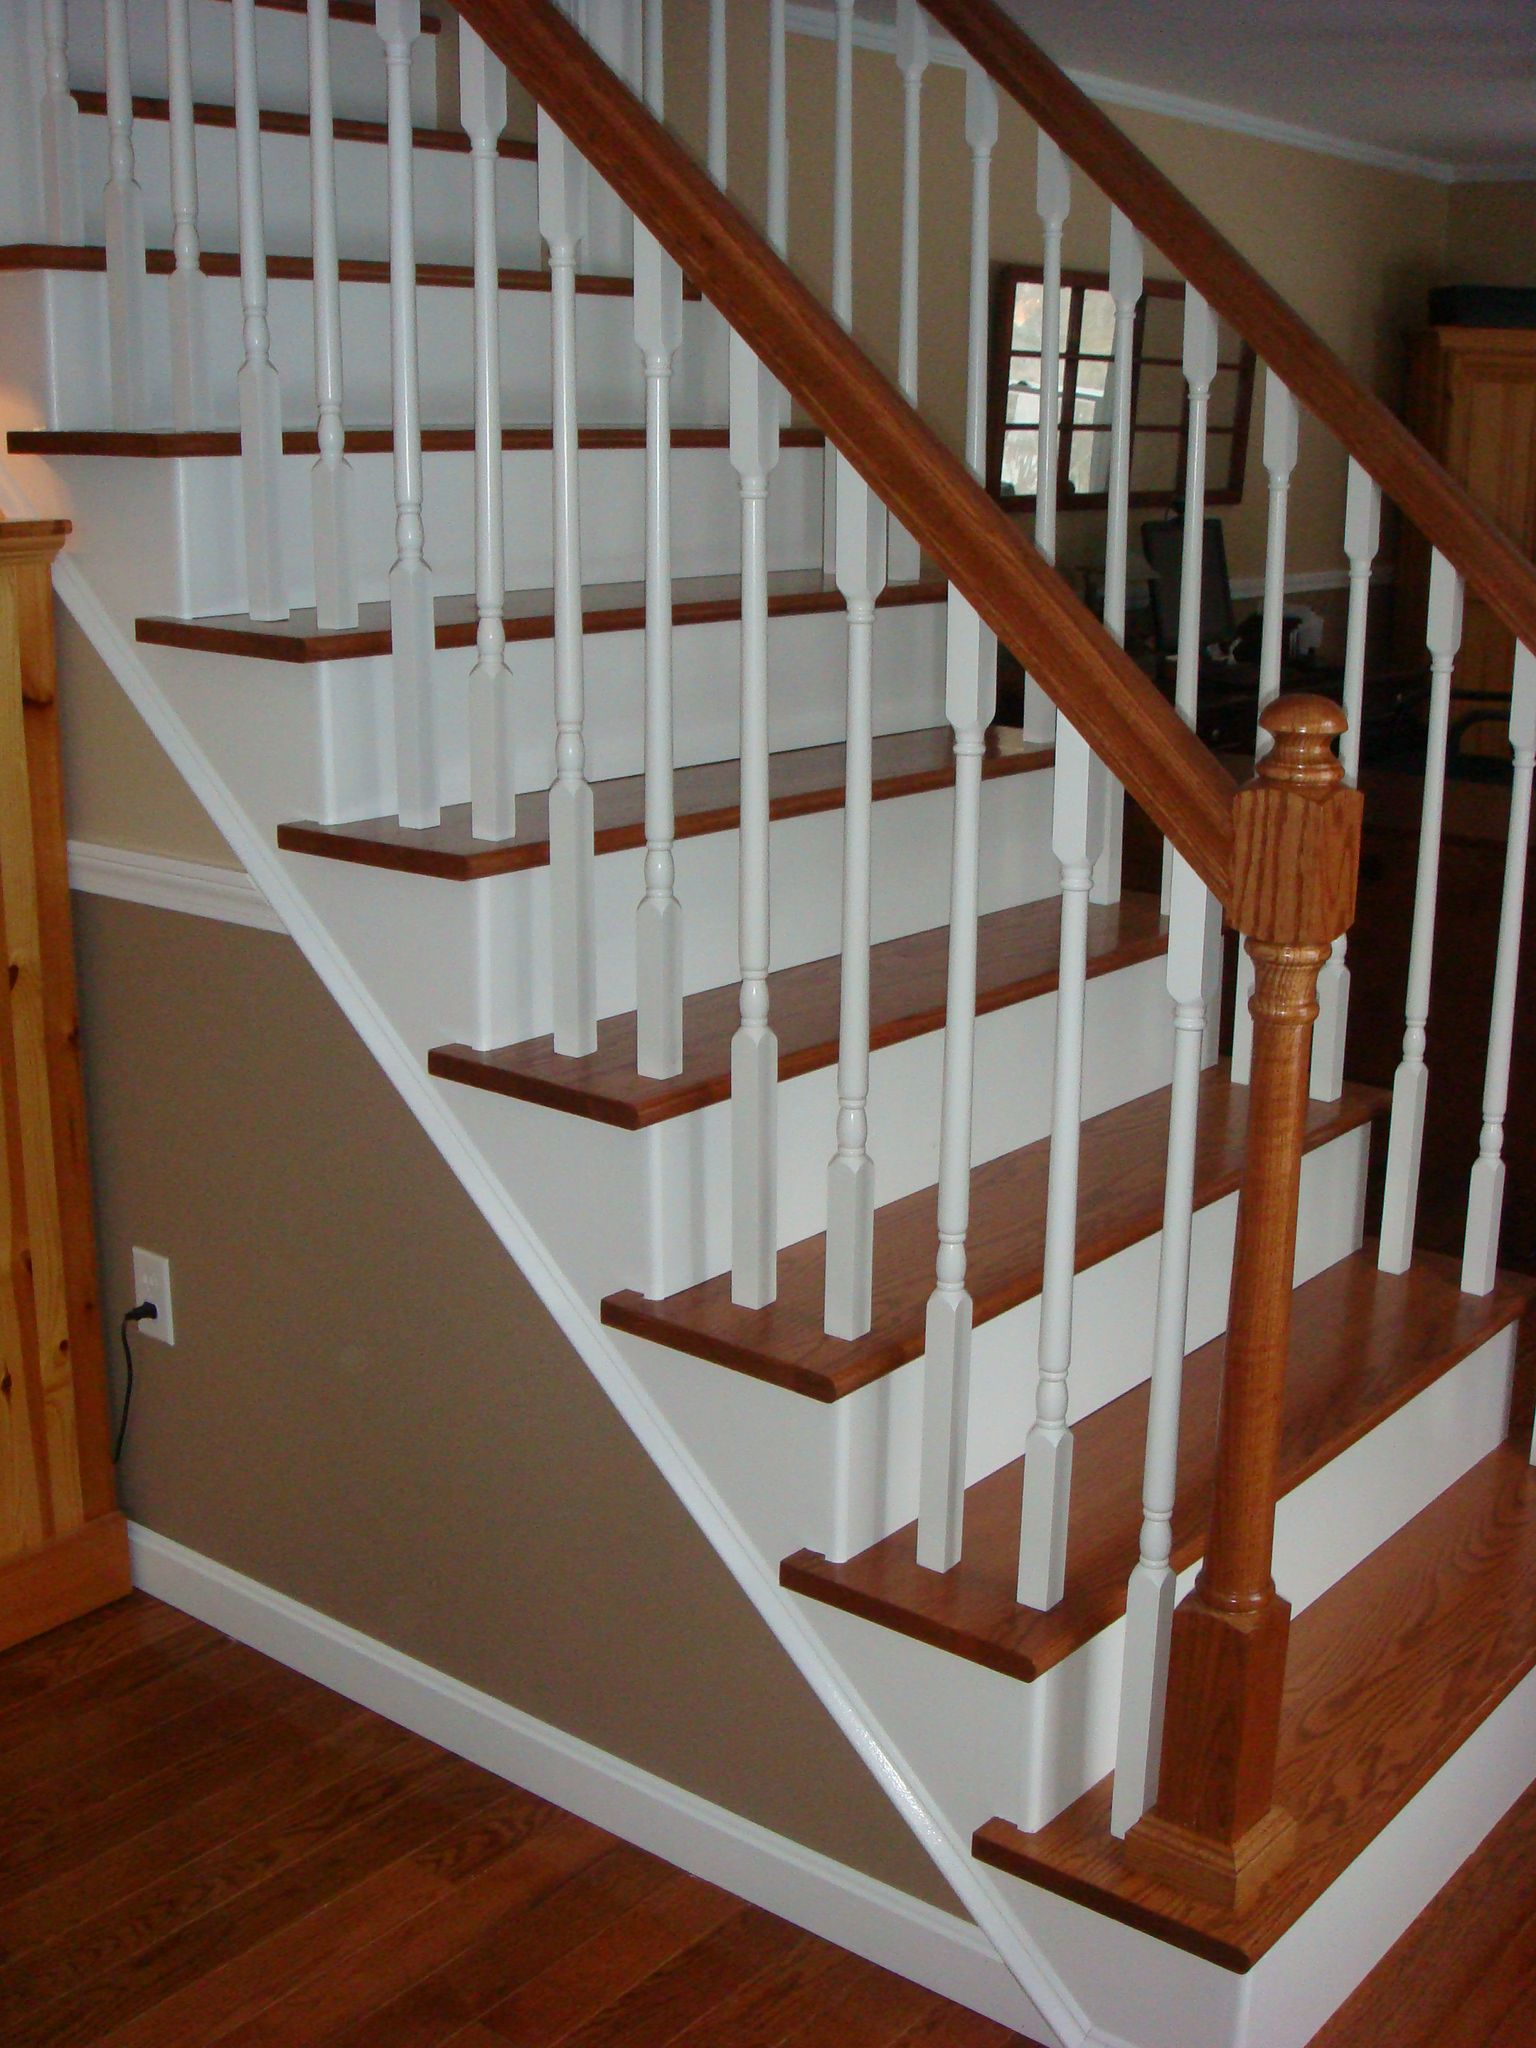 Ordinaire Redoing Stair Treads | Remodelaholic | From Carpet To Wooden Stair Treads:  Guest Remodel